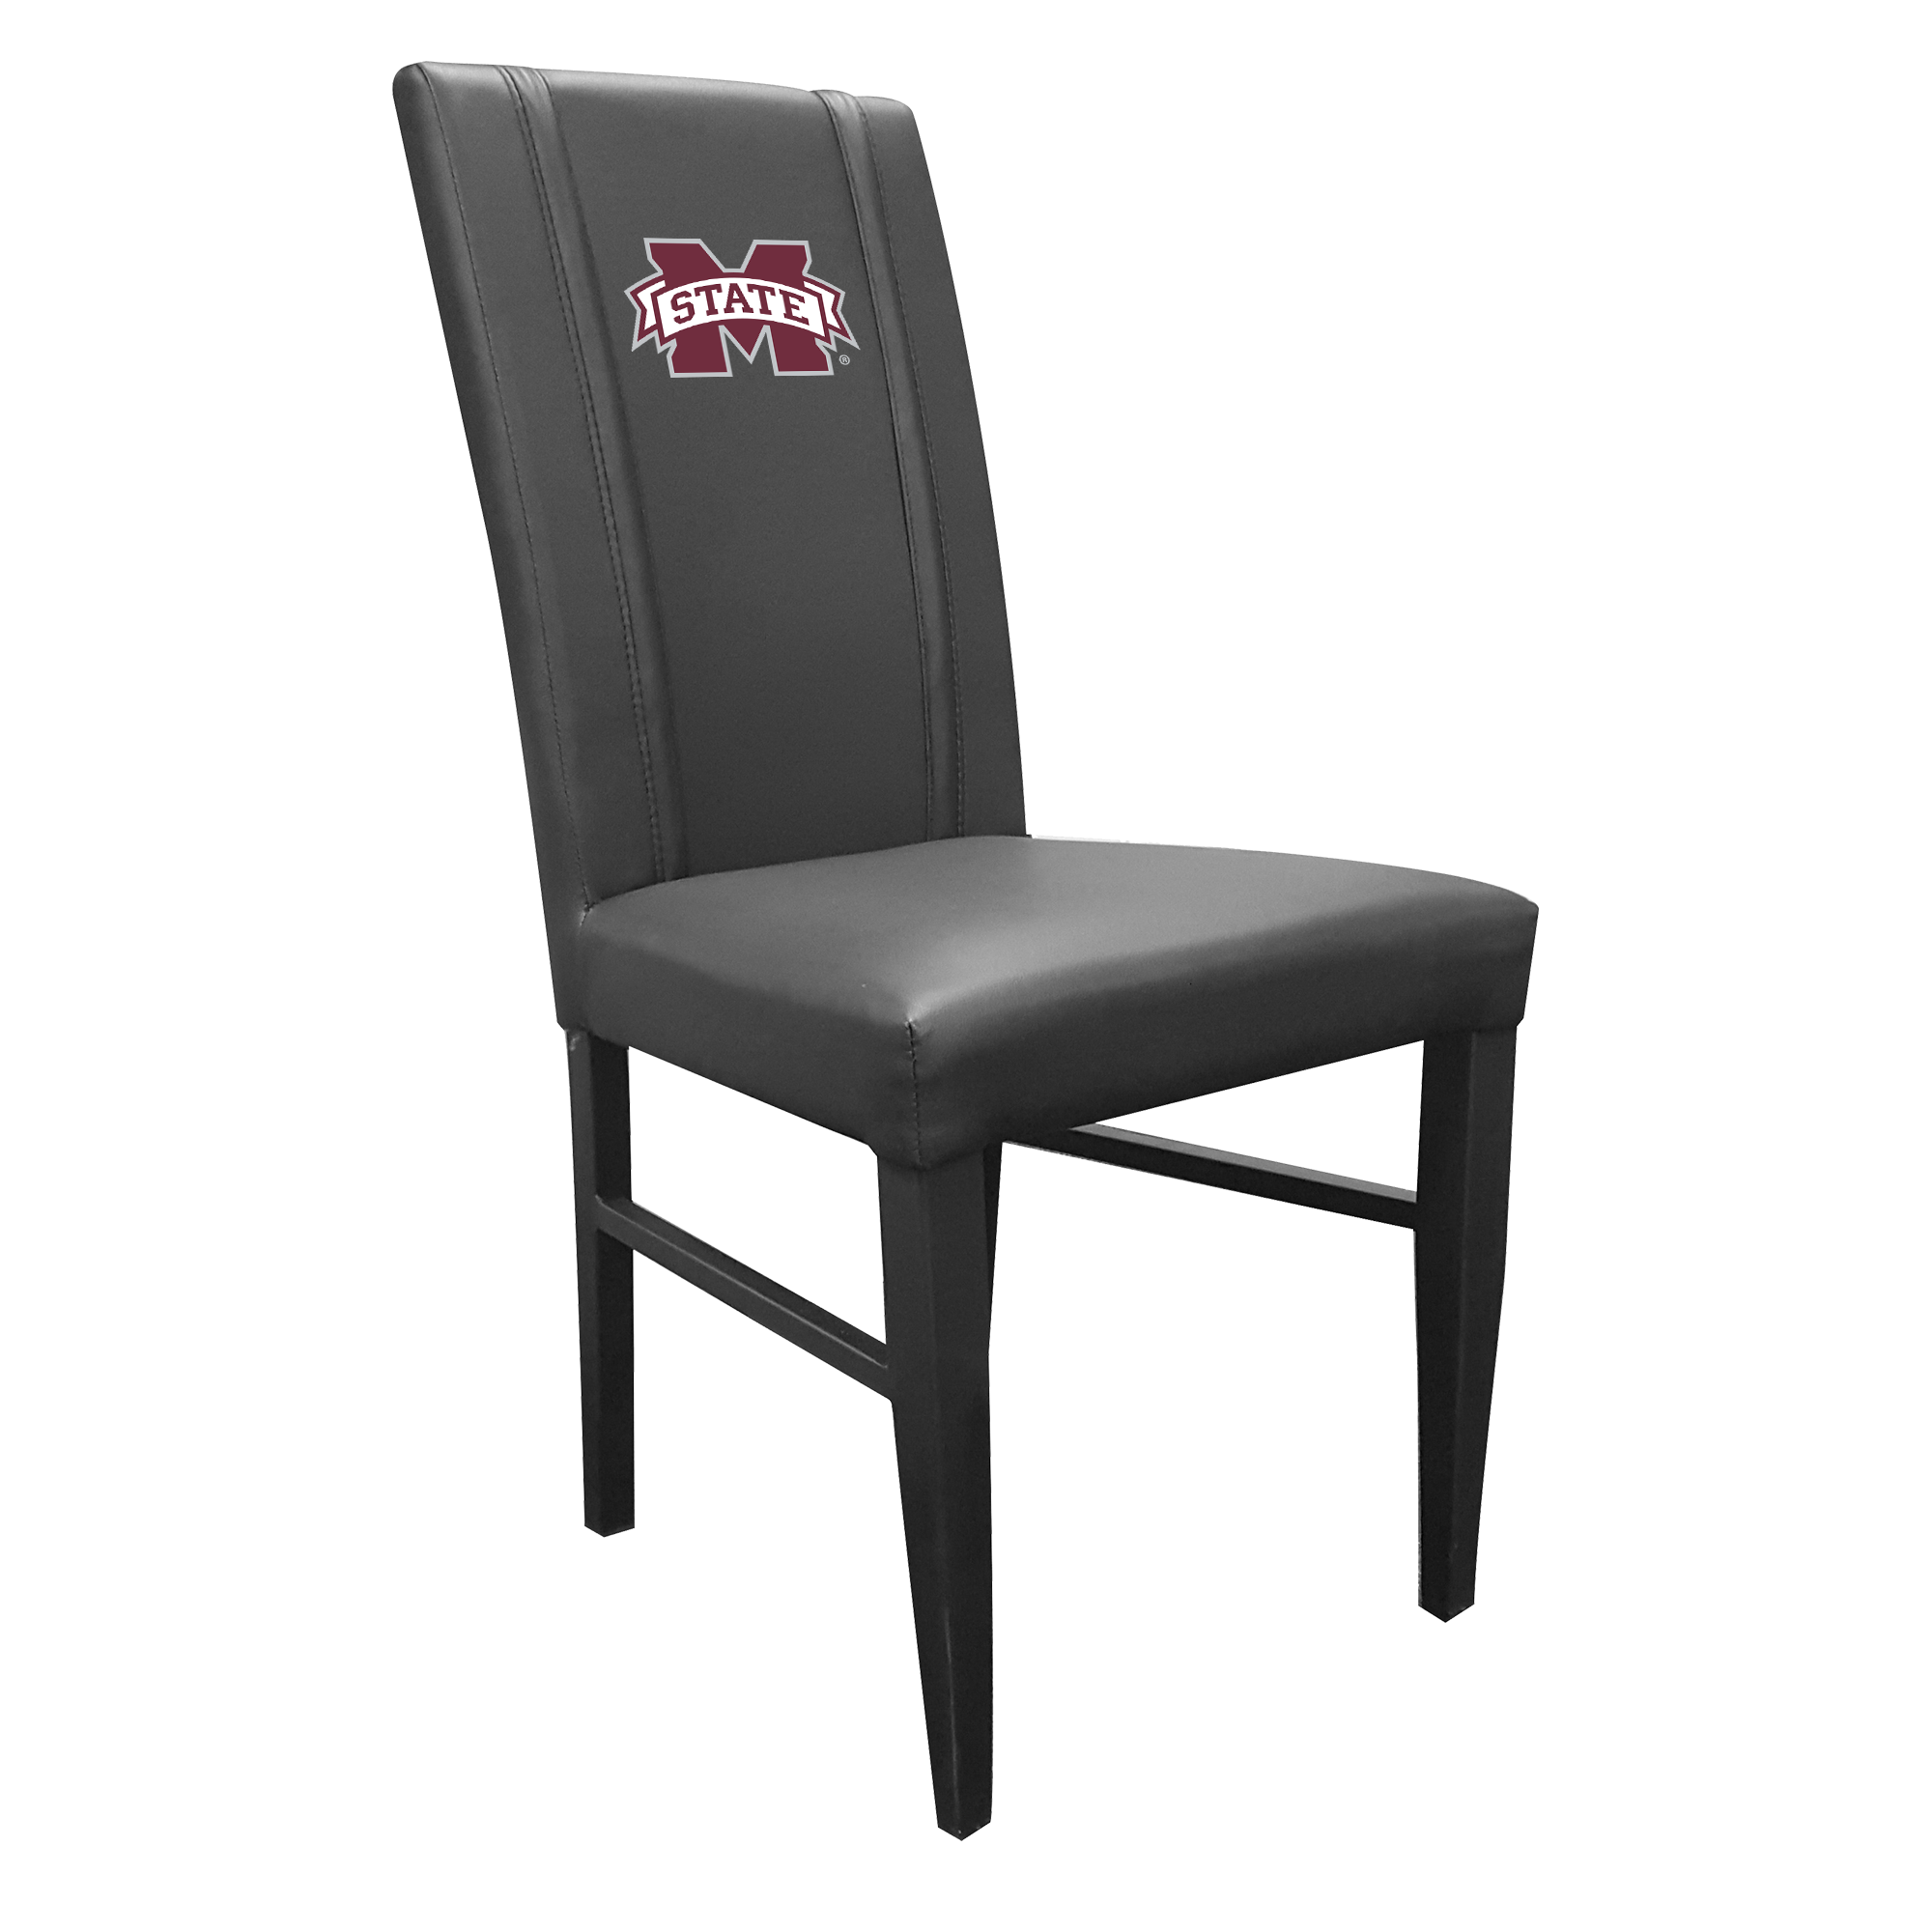 Side Chair 2000 with Mississippi State Primary